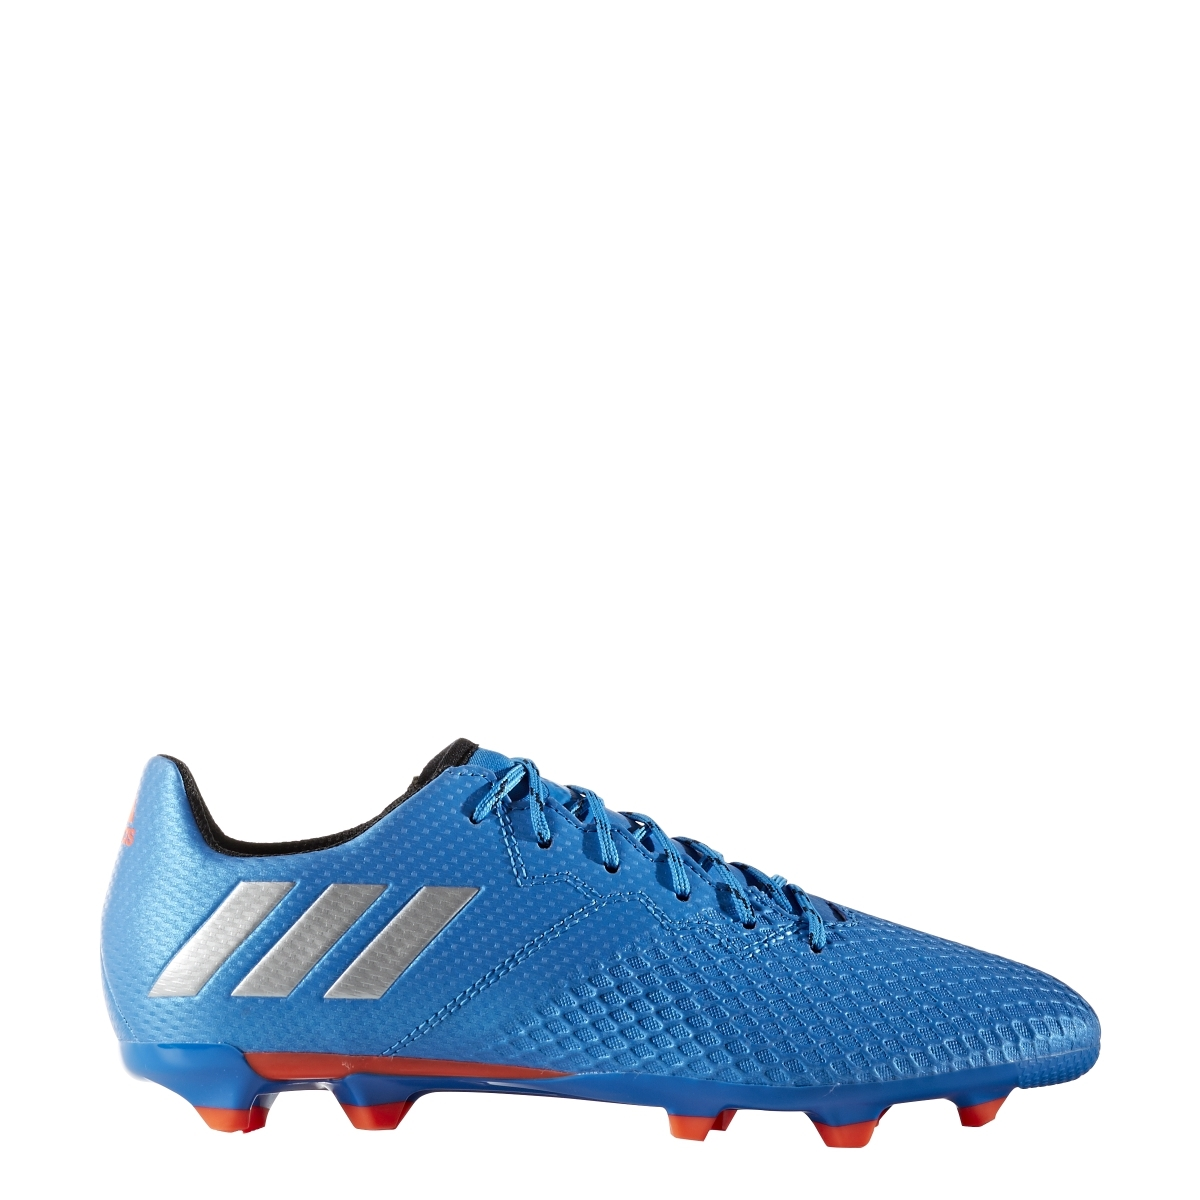 bea31b7b15ab Adidas Messi 16.3 Youth FG Soccer Cleats (Shock Blue/Silver Metallic ...